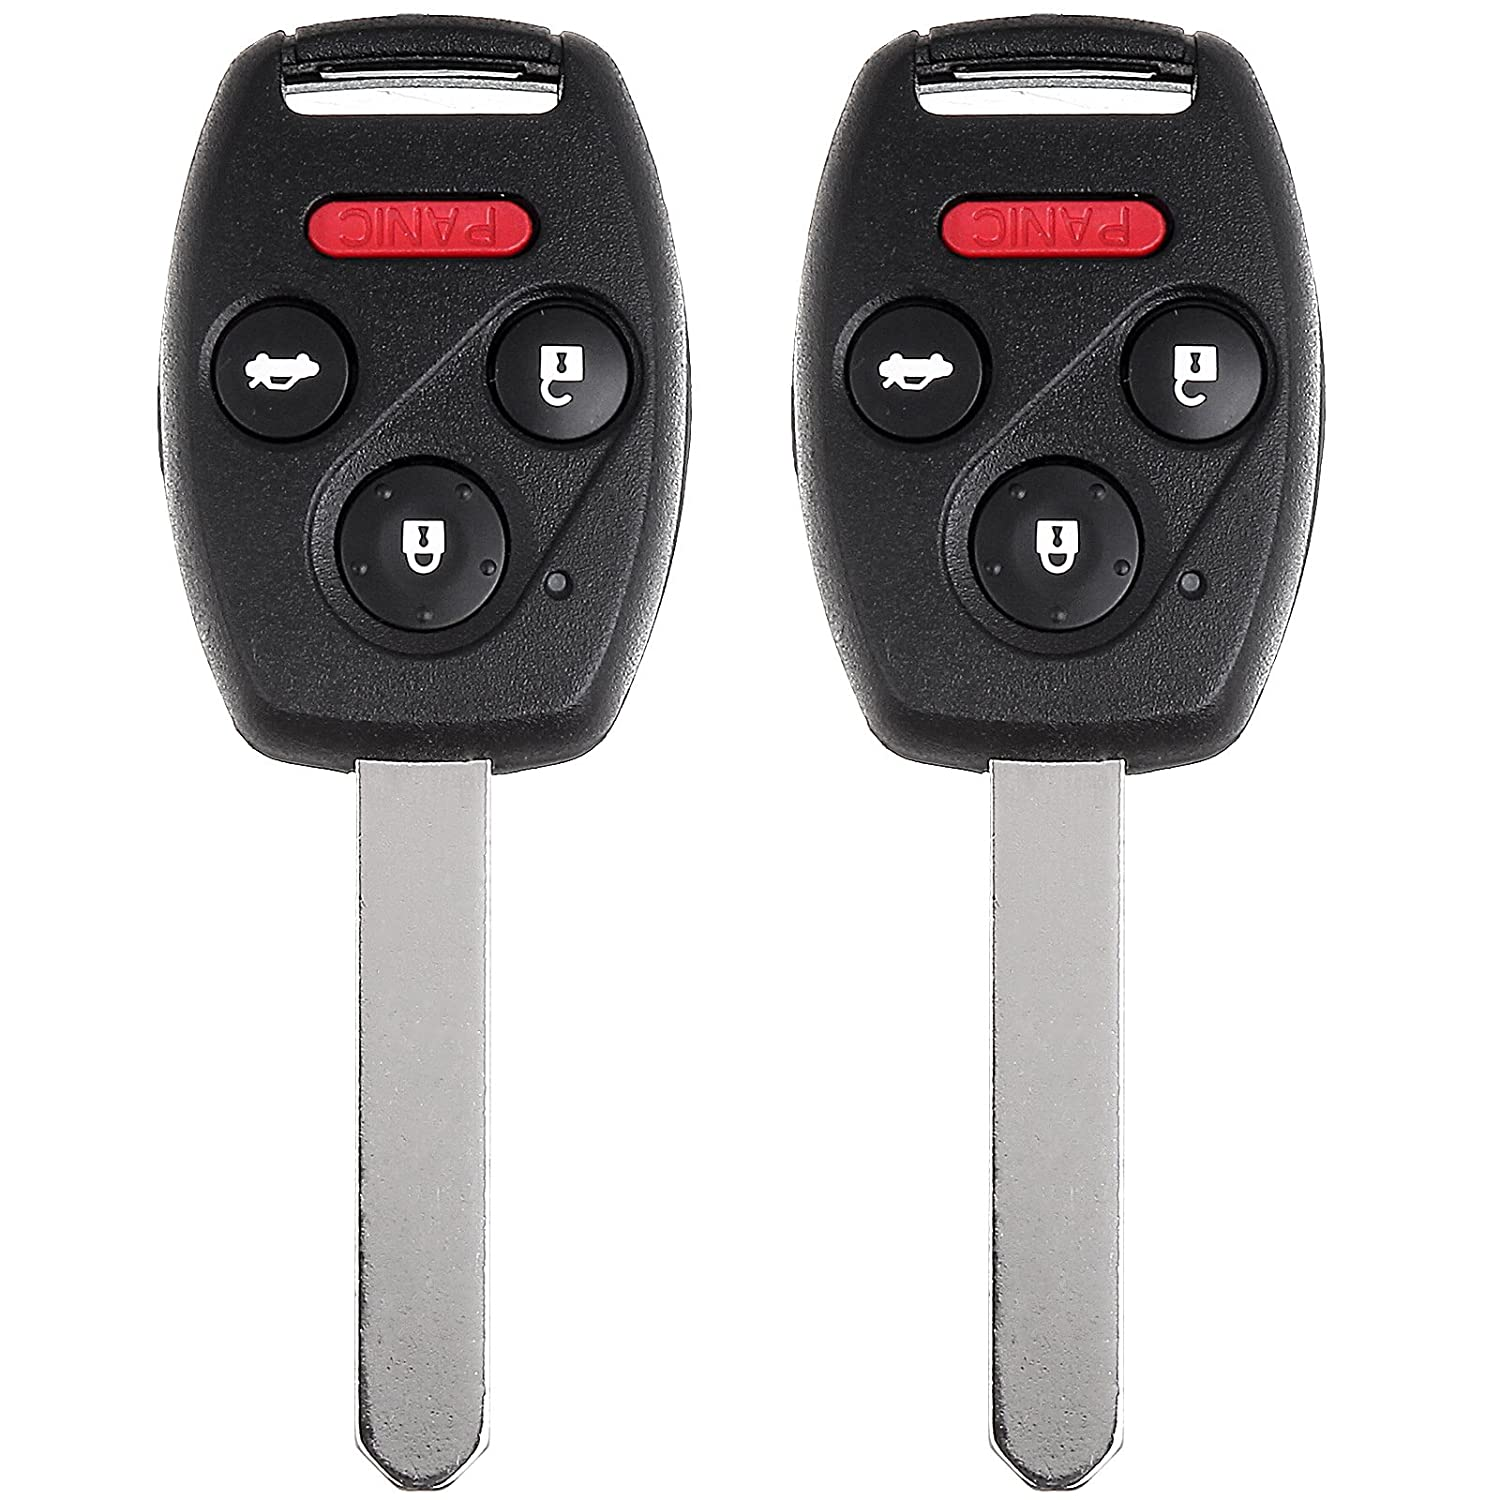 SCITOO Ignition Key 2 New Replacement Uncut Ignition Key Keyless Entry Remote Fob 850G-G8D380HA